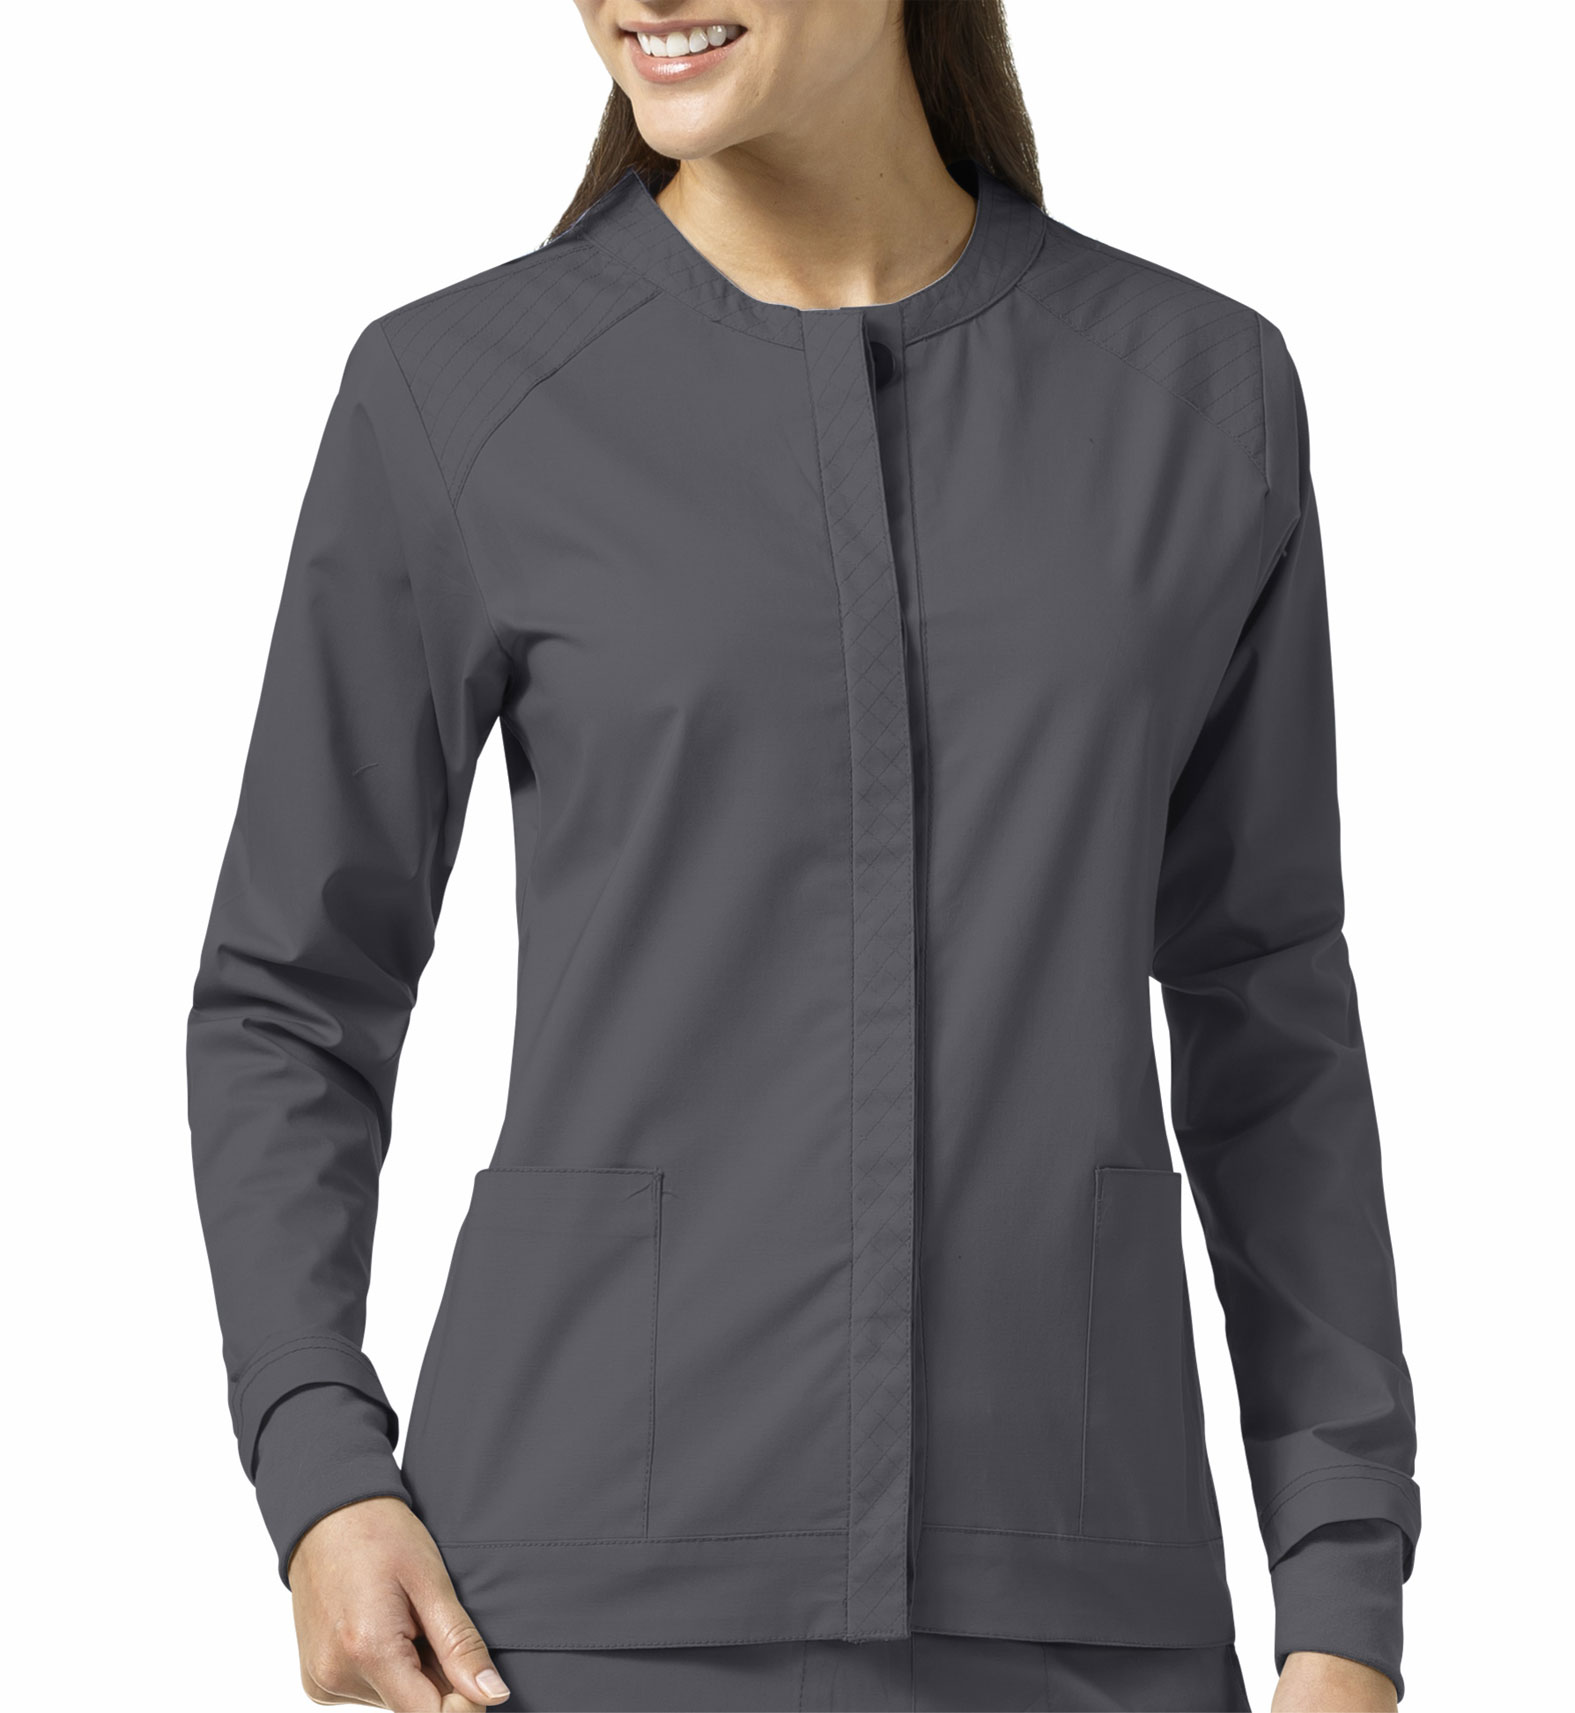 Vera Bradley Ladies Ruth Warm Up Jacket - Signature Collection